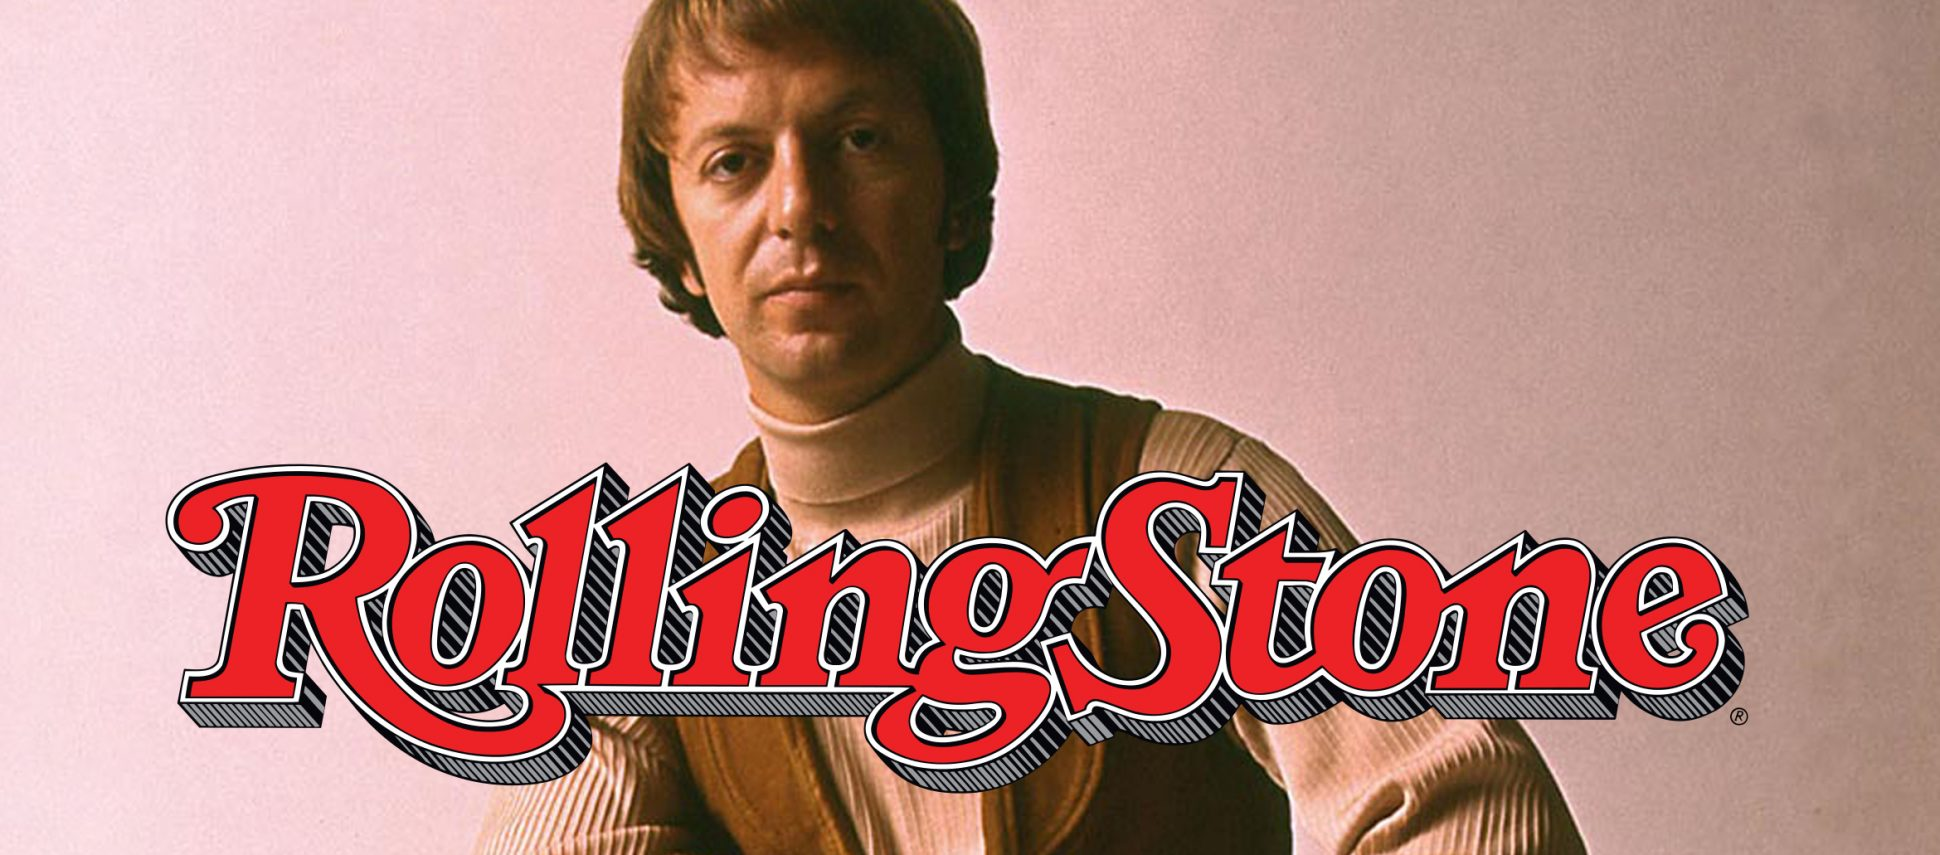 Dion-Rolling-Stone-News-Iteam